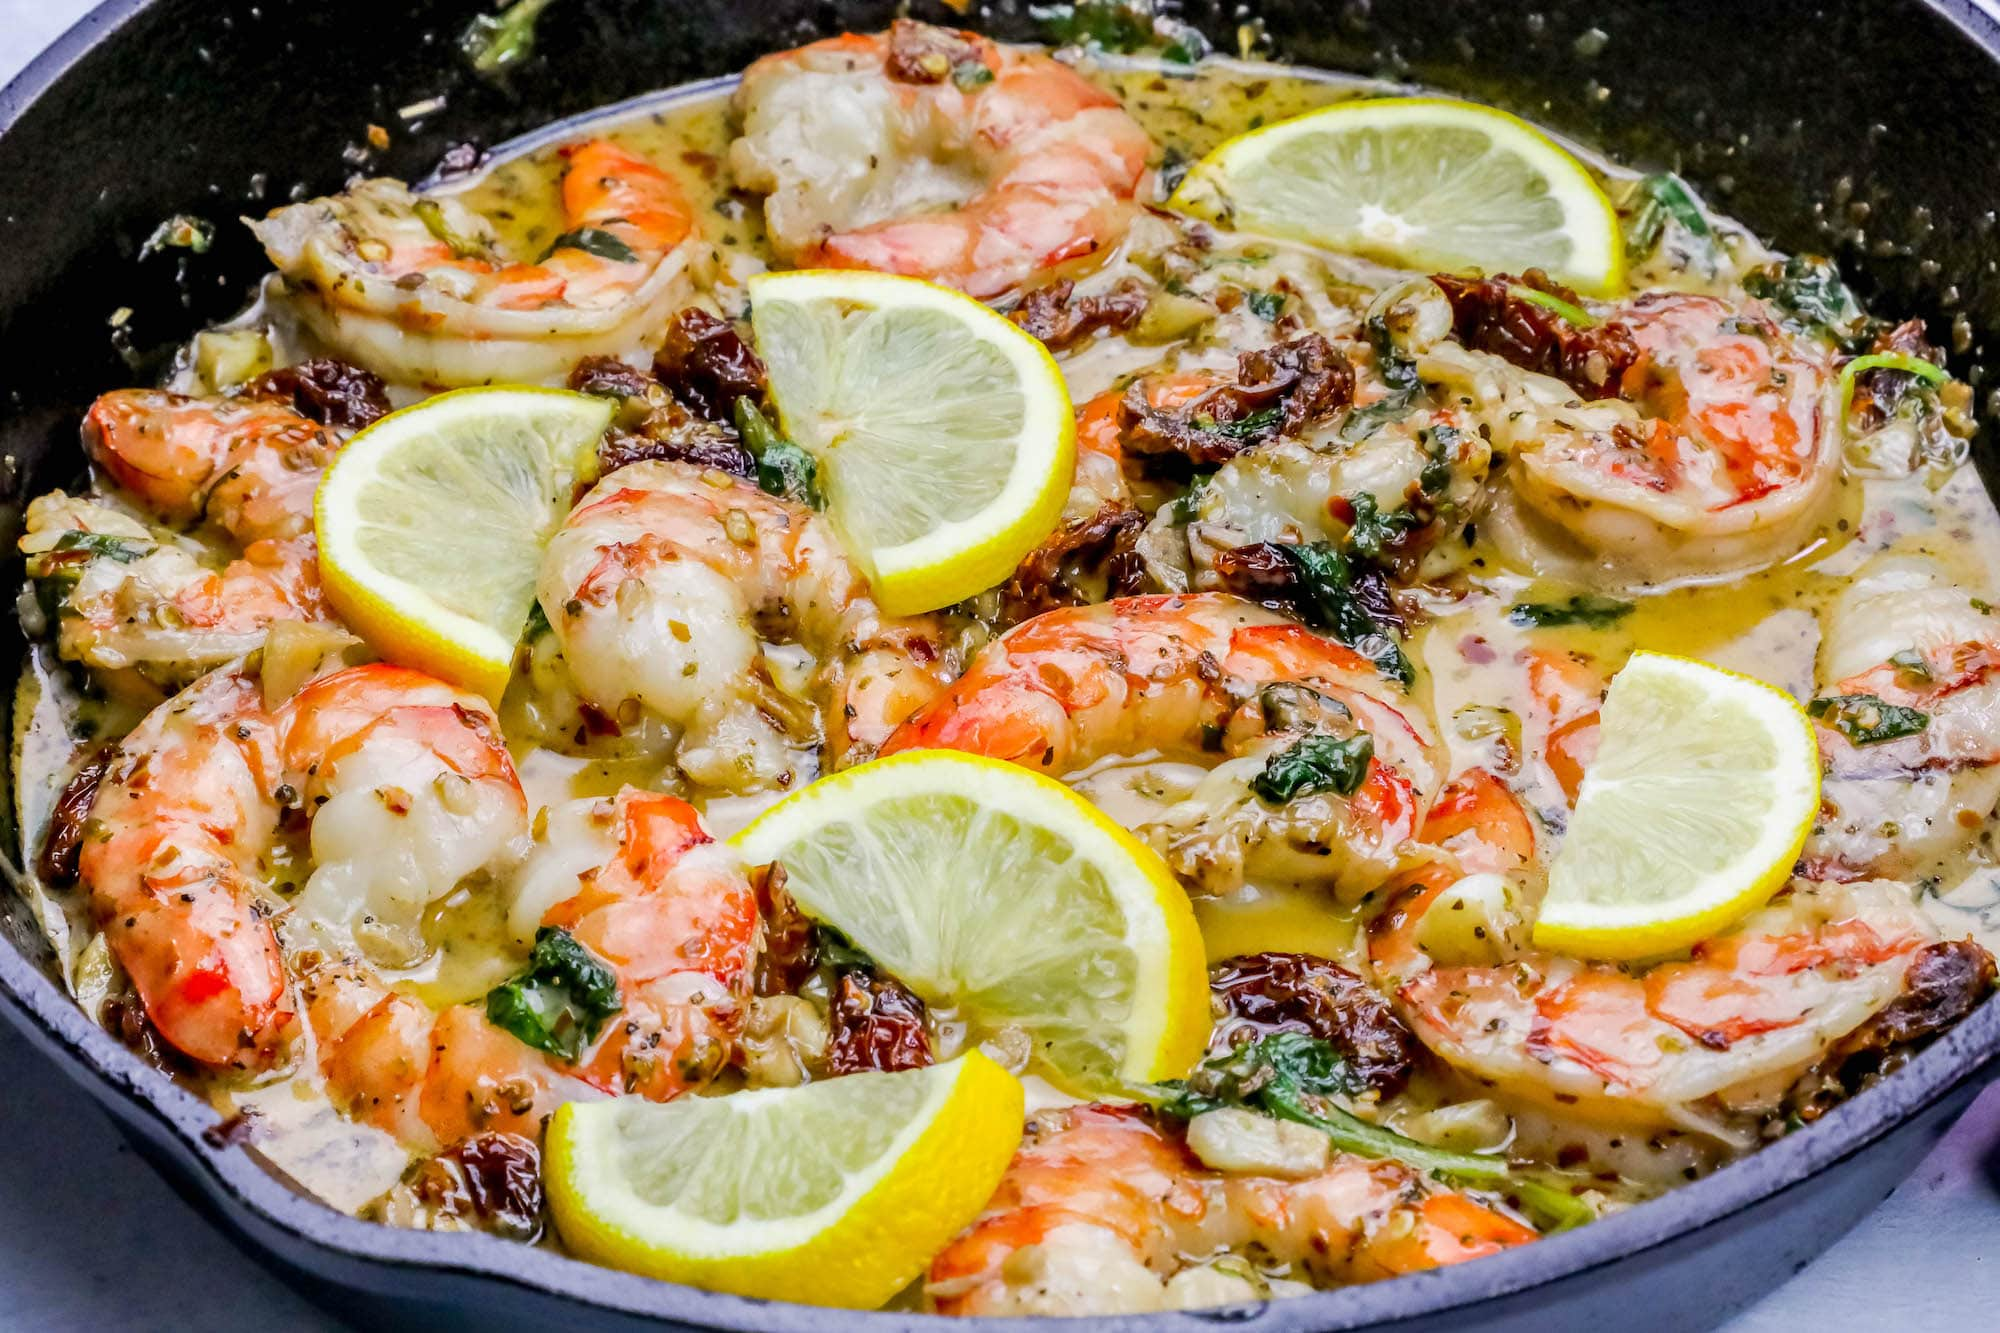 Breathtaking Garlic Lemon Creamy Shrimp Scampi Dip Outback Nutrition Creamy Shrimp Scampi Recipe Without Wine One Pot Creamy Shrimp Florentine Skillet Recipe nice food Creamy Shrimp Scampi